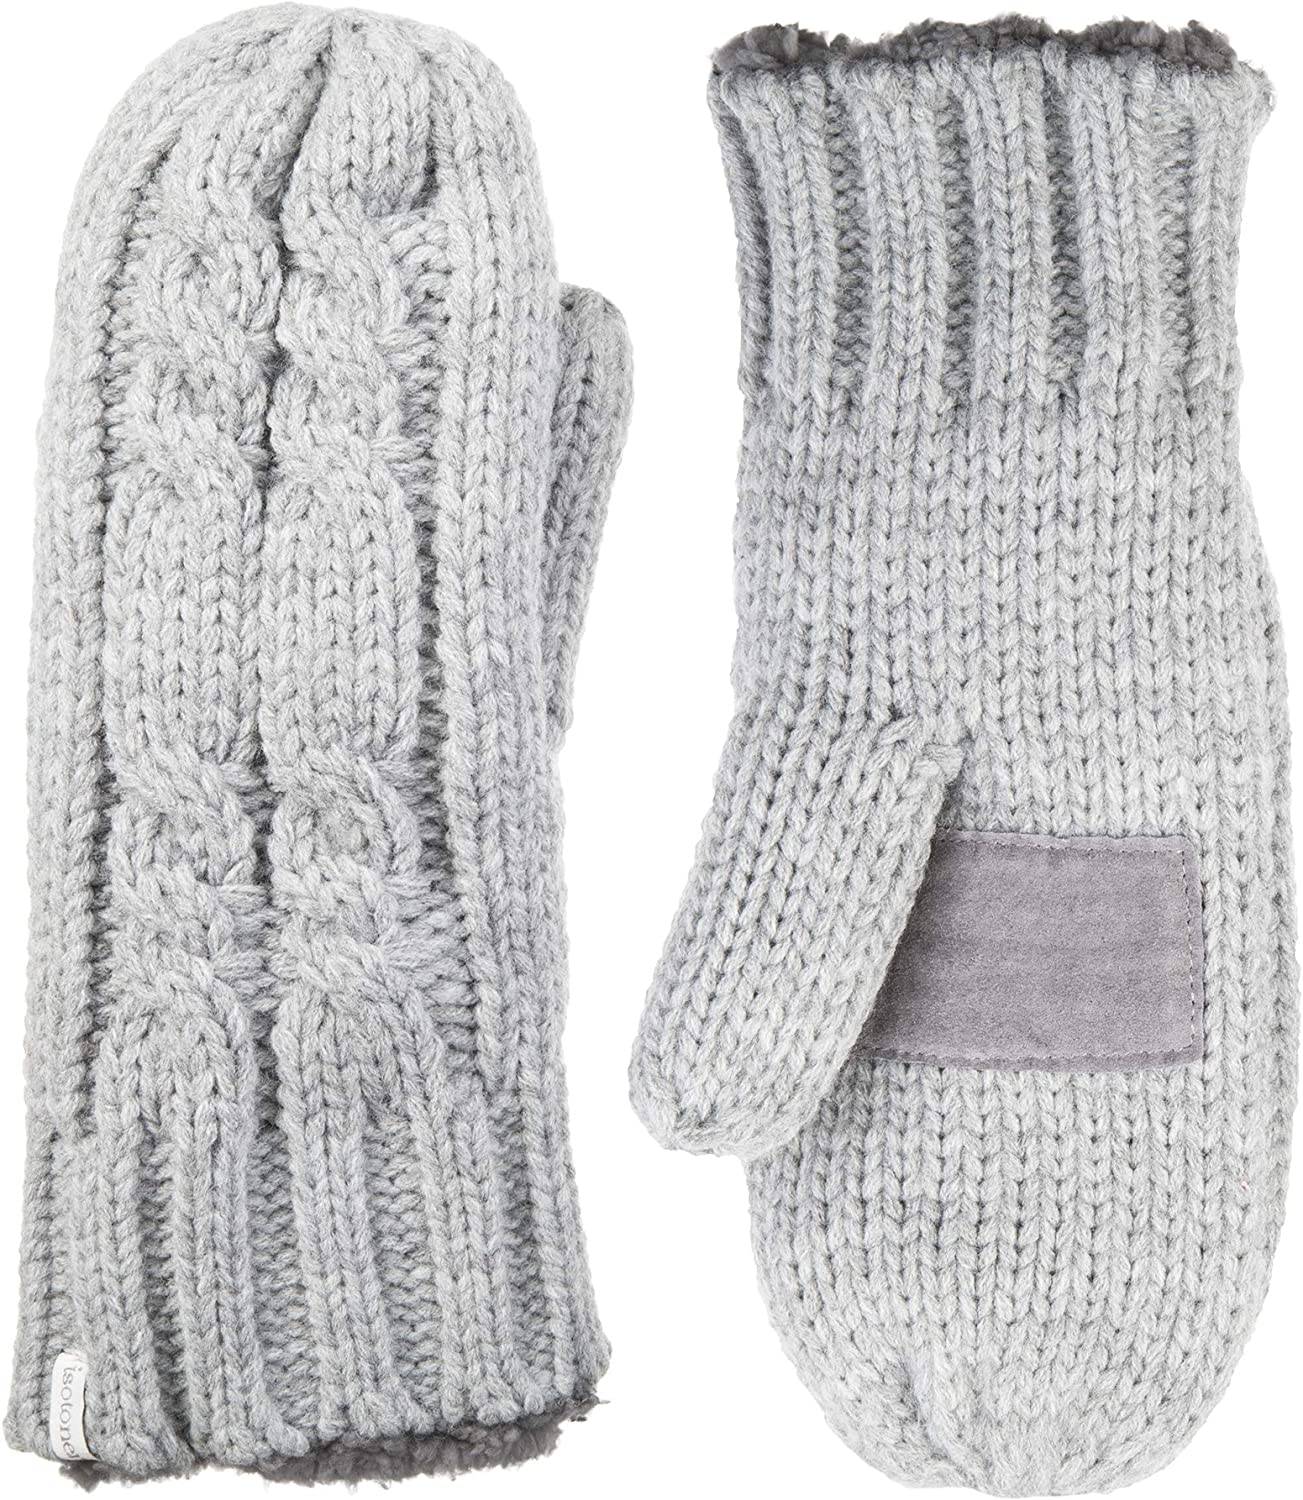 isotoner Women's Chunky Cable Knit Cold Weather Mittens with Warm, Soft Lining